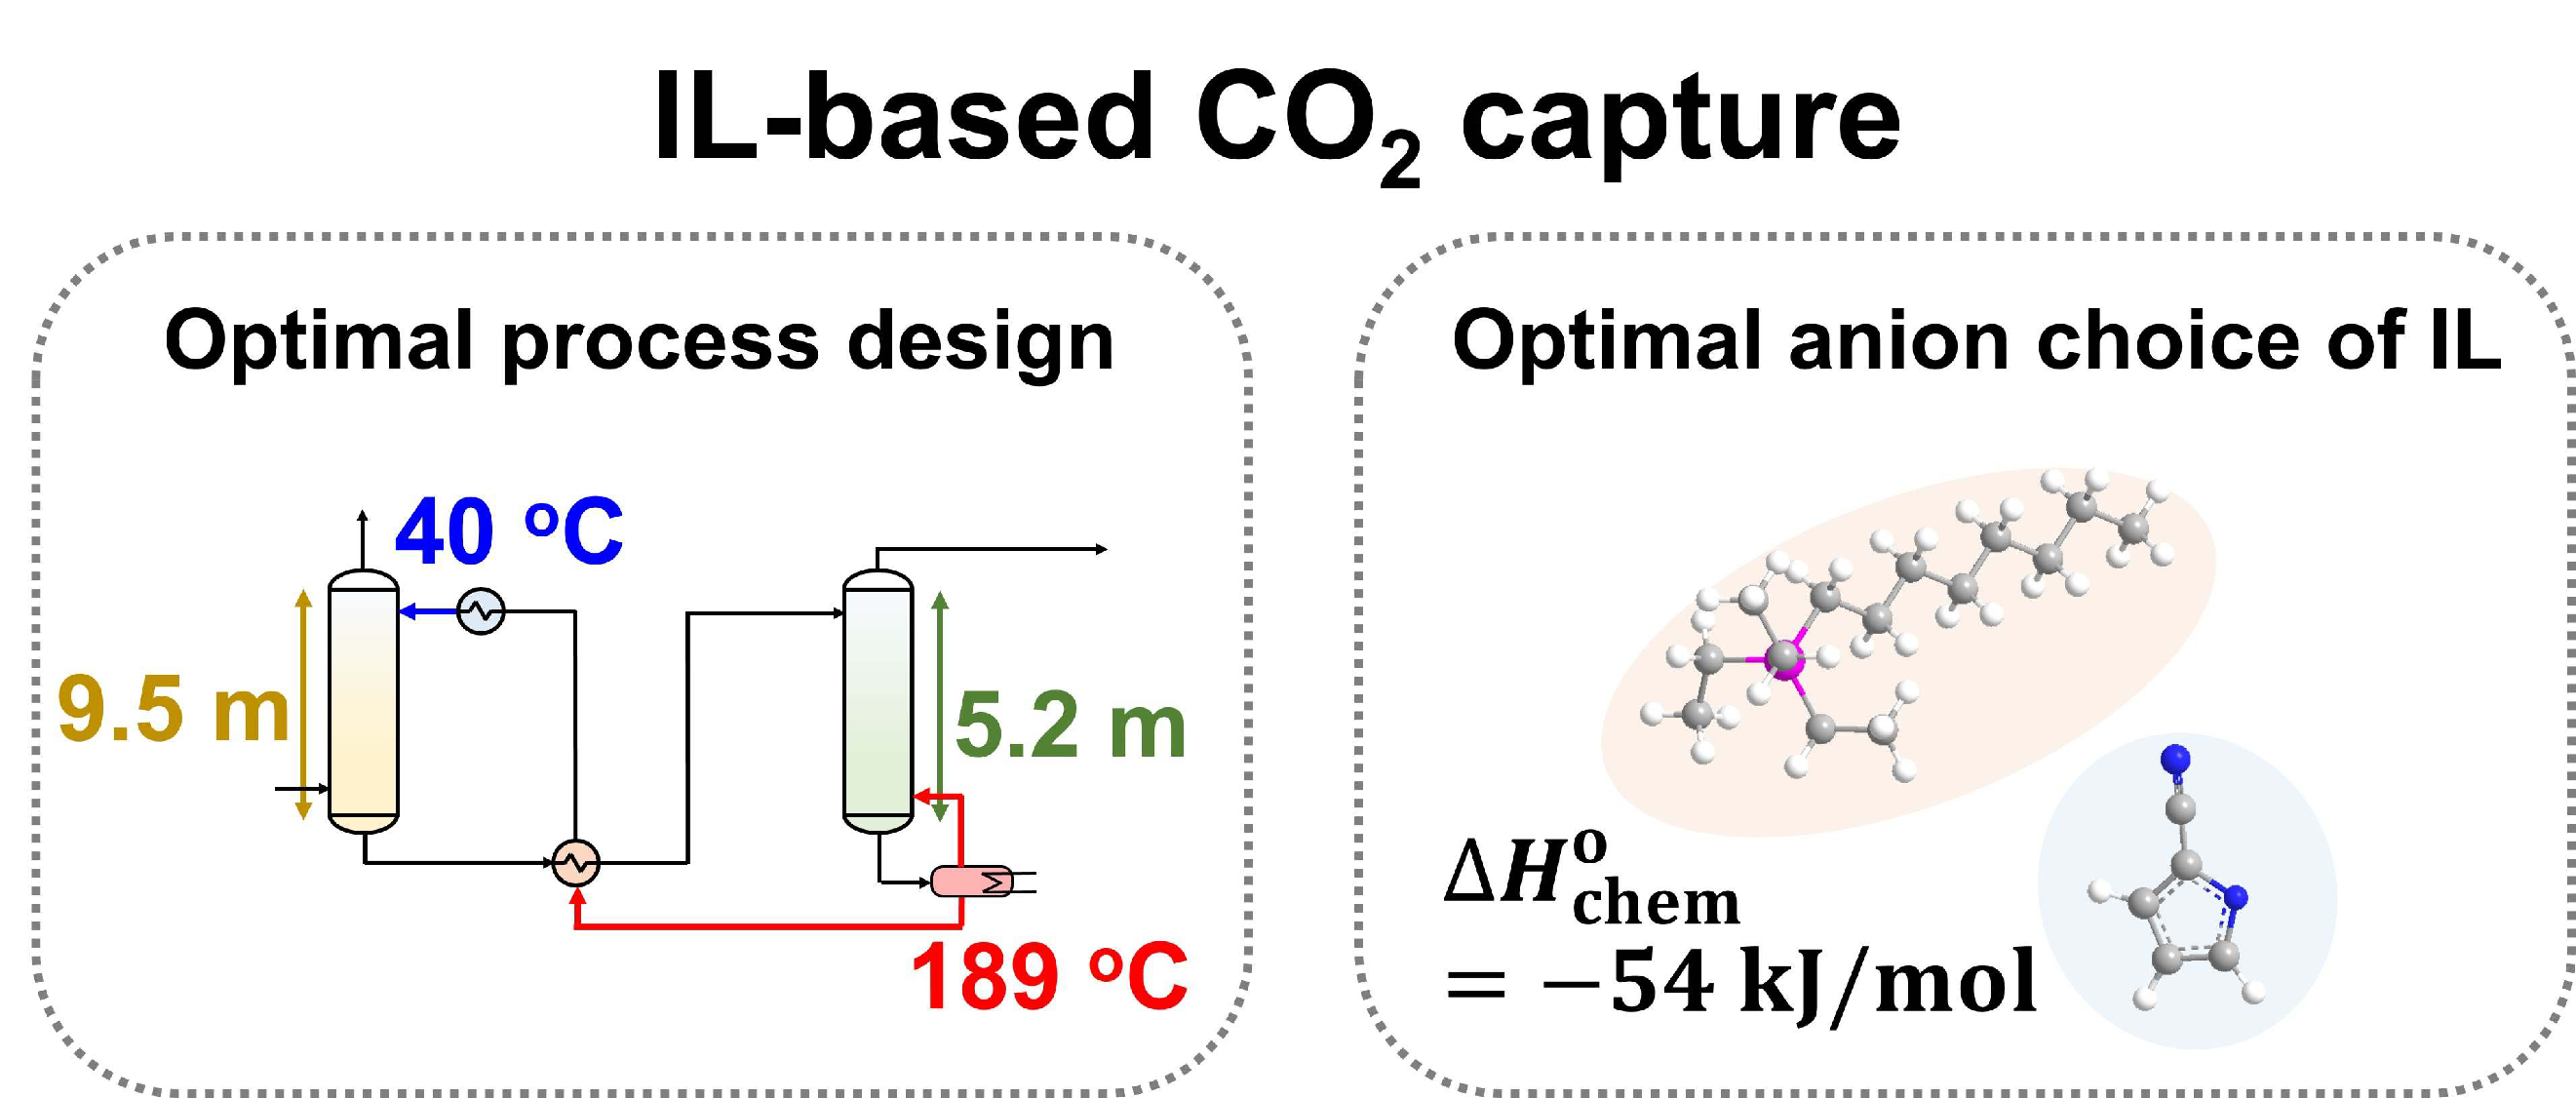 illustration of IL-based CO2 capture: optimal process design and optimal anion choice of IL